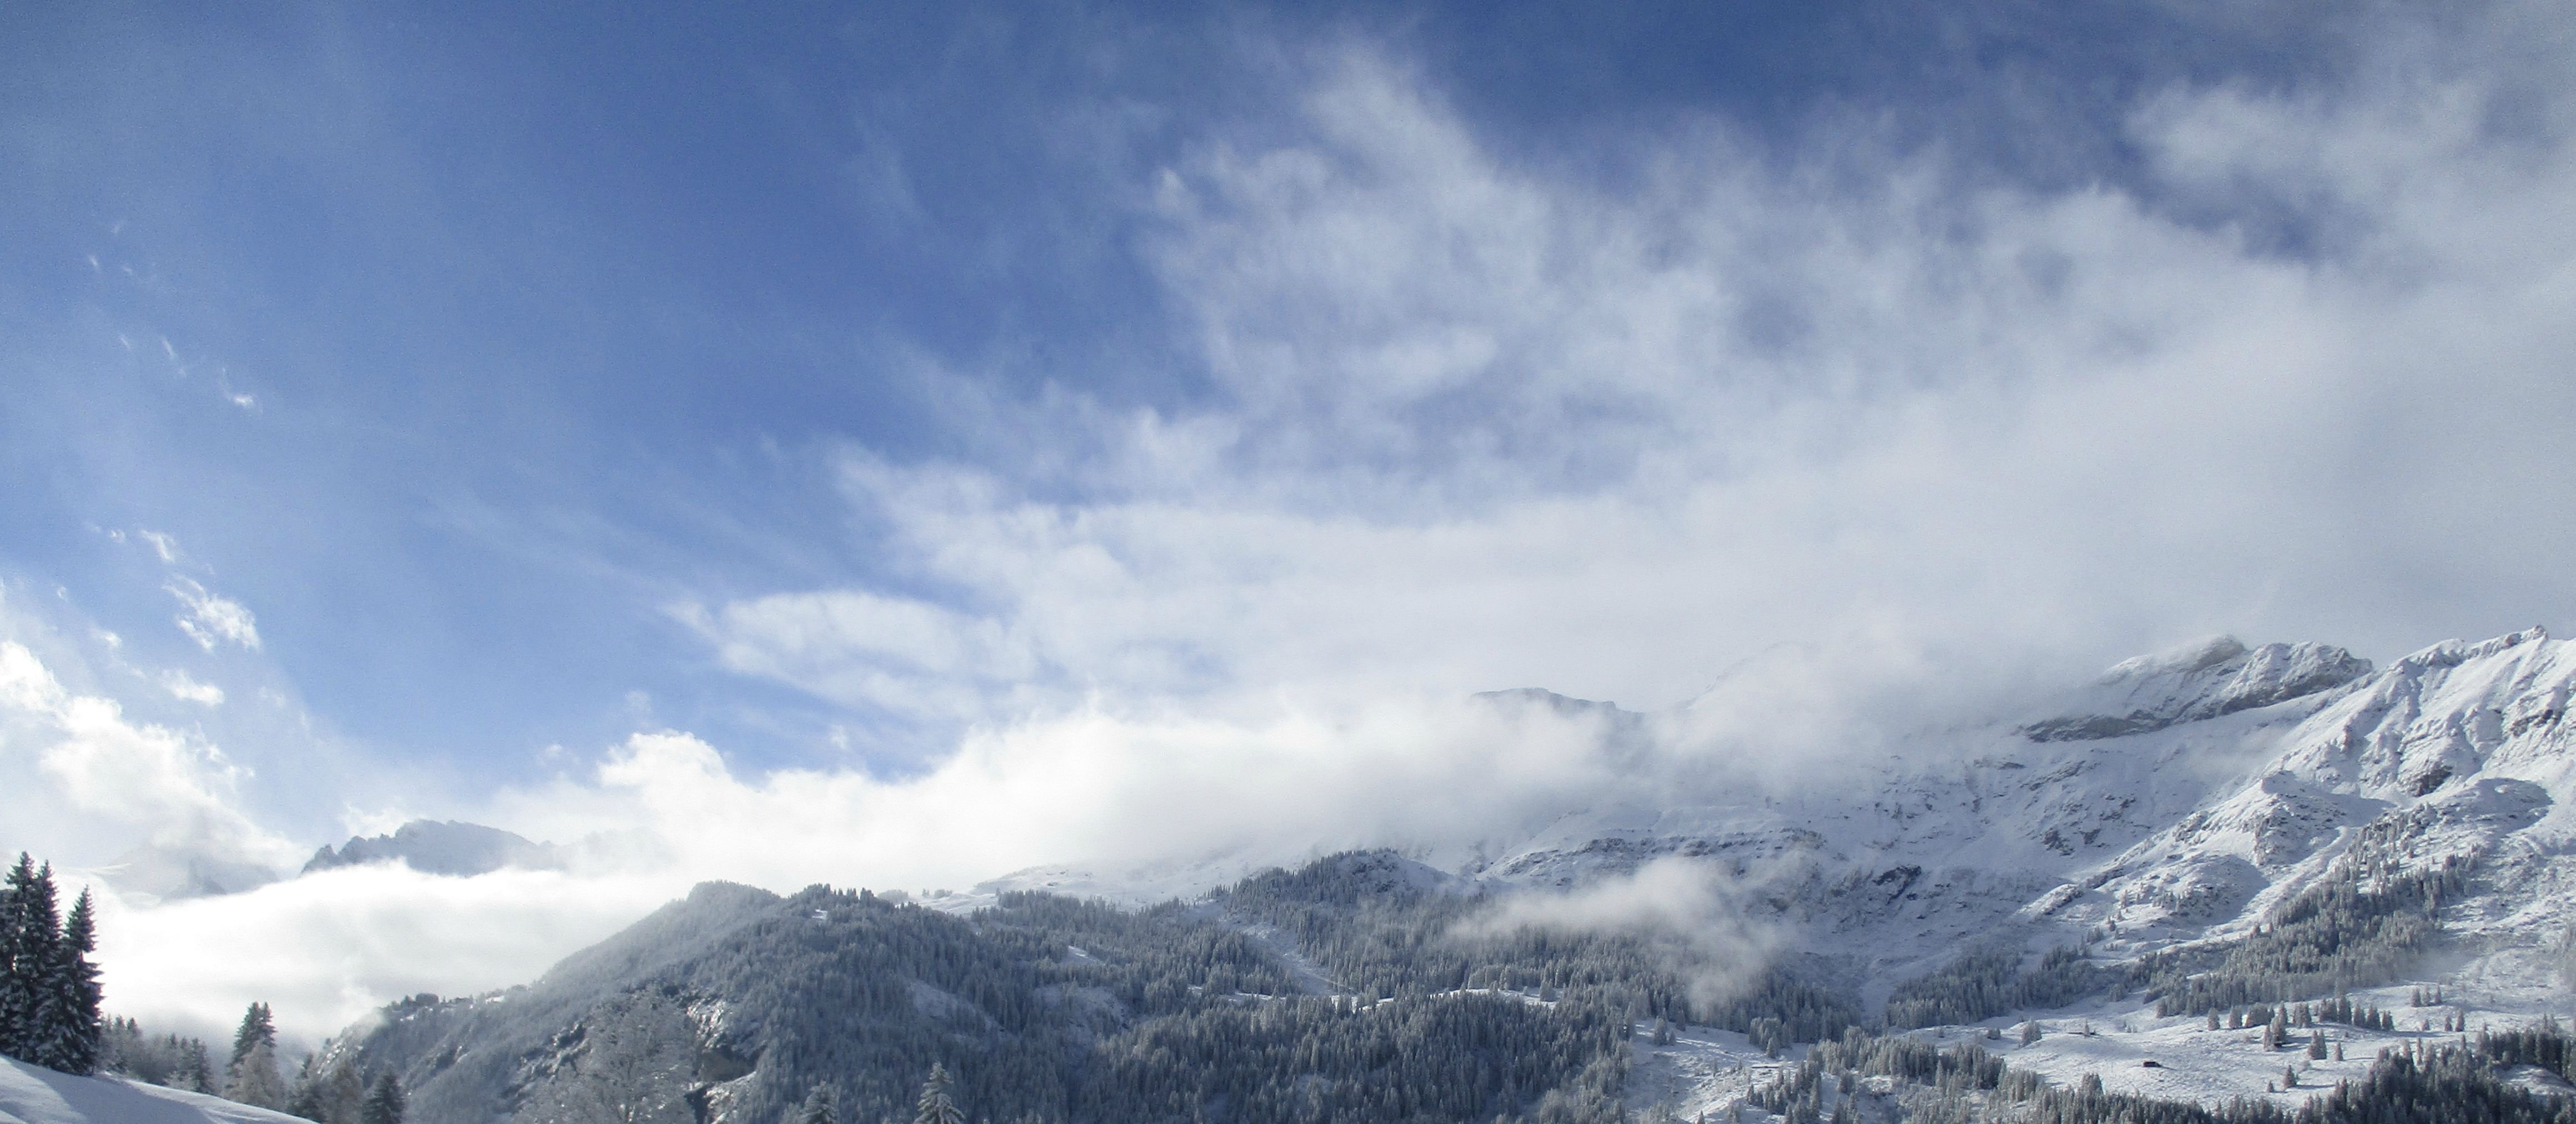 Swiss 4k Wallpapers For Your Desktop Or Mobile Screen Free